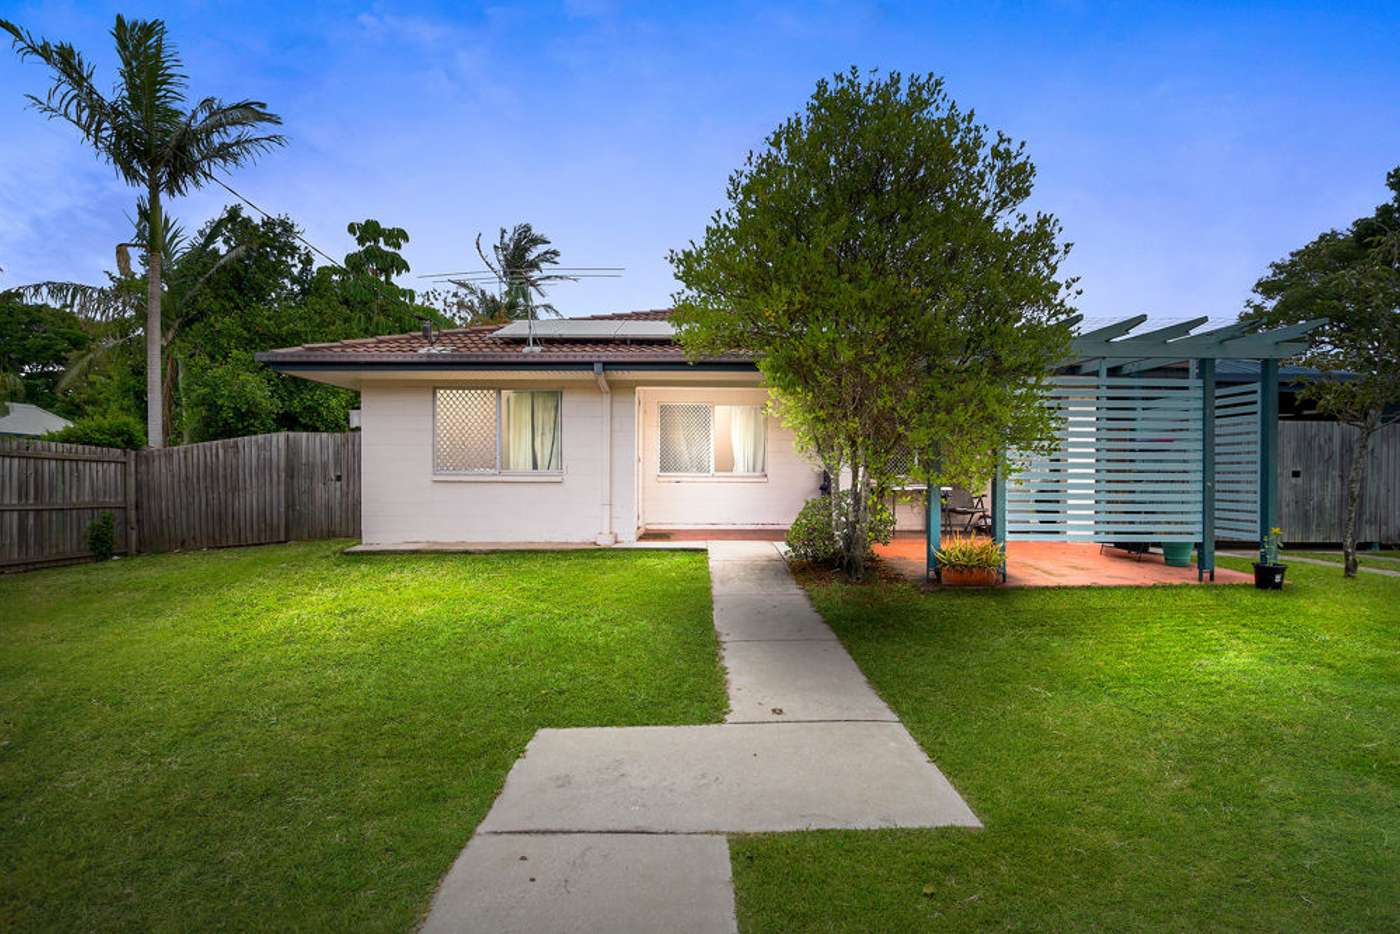 Main view of Homely house listing, 10 Noellan Drive, Deception Bay QLD 4508